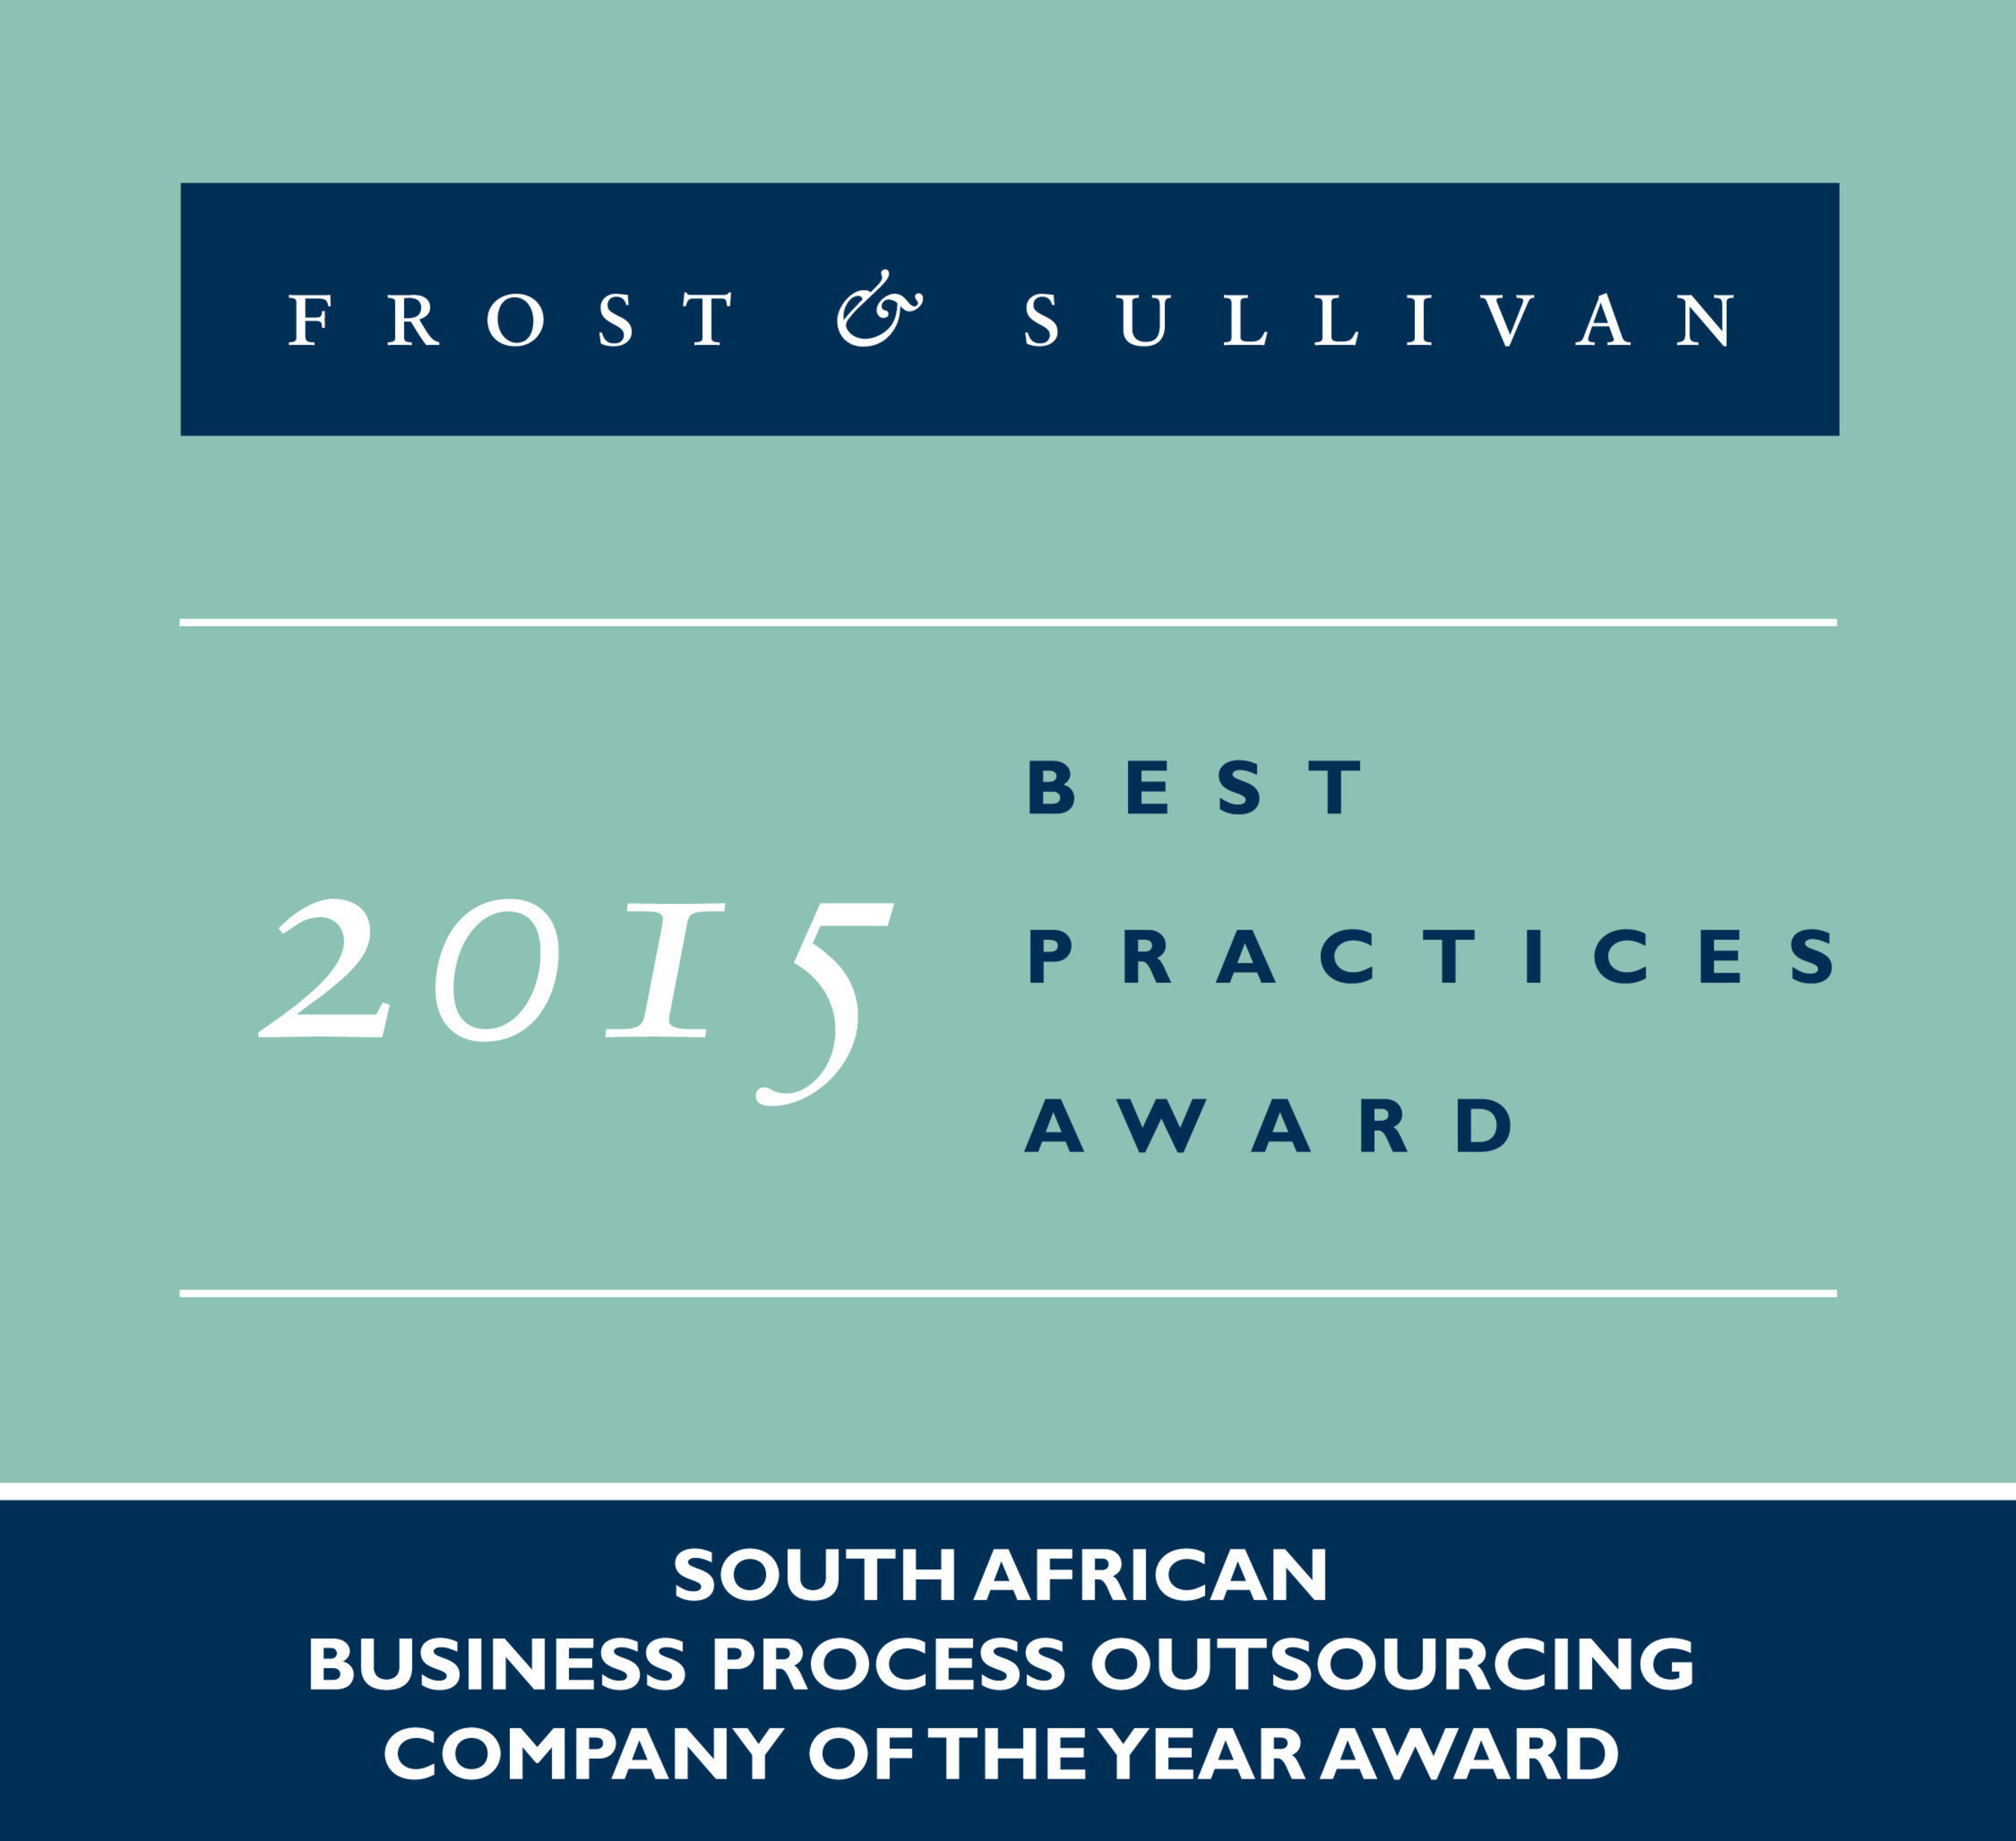 Frost & Sullivan Acclaims Merchants' Excellence in Fostering Client Relationships to Deliver Best-fit Services to BPOs